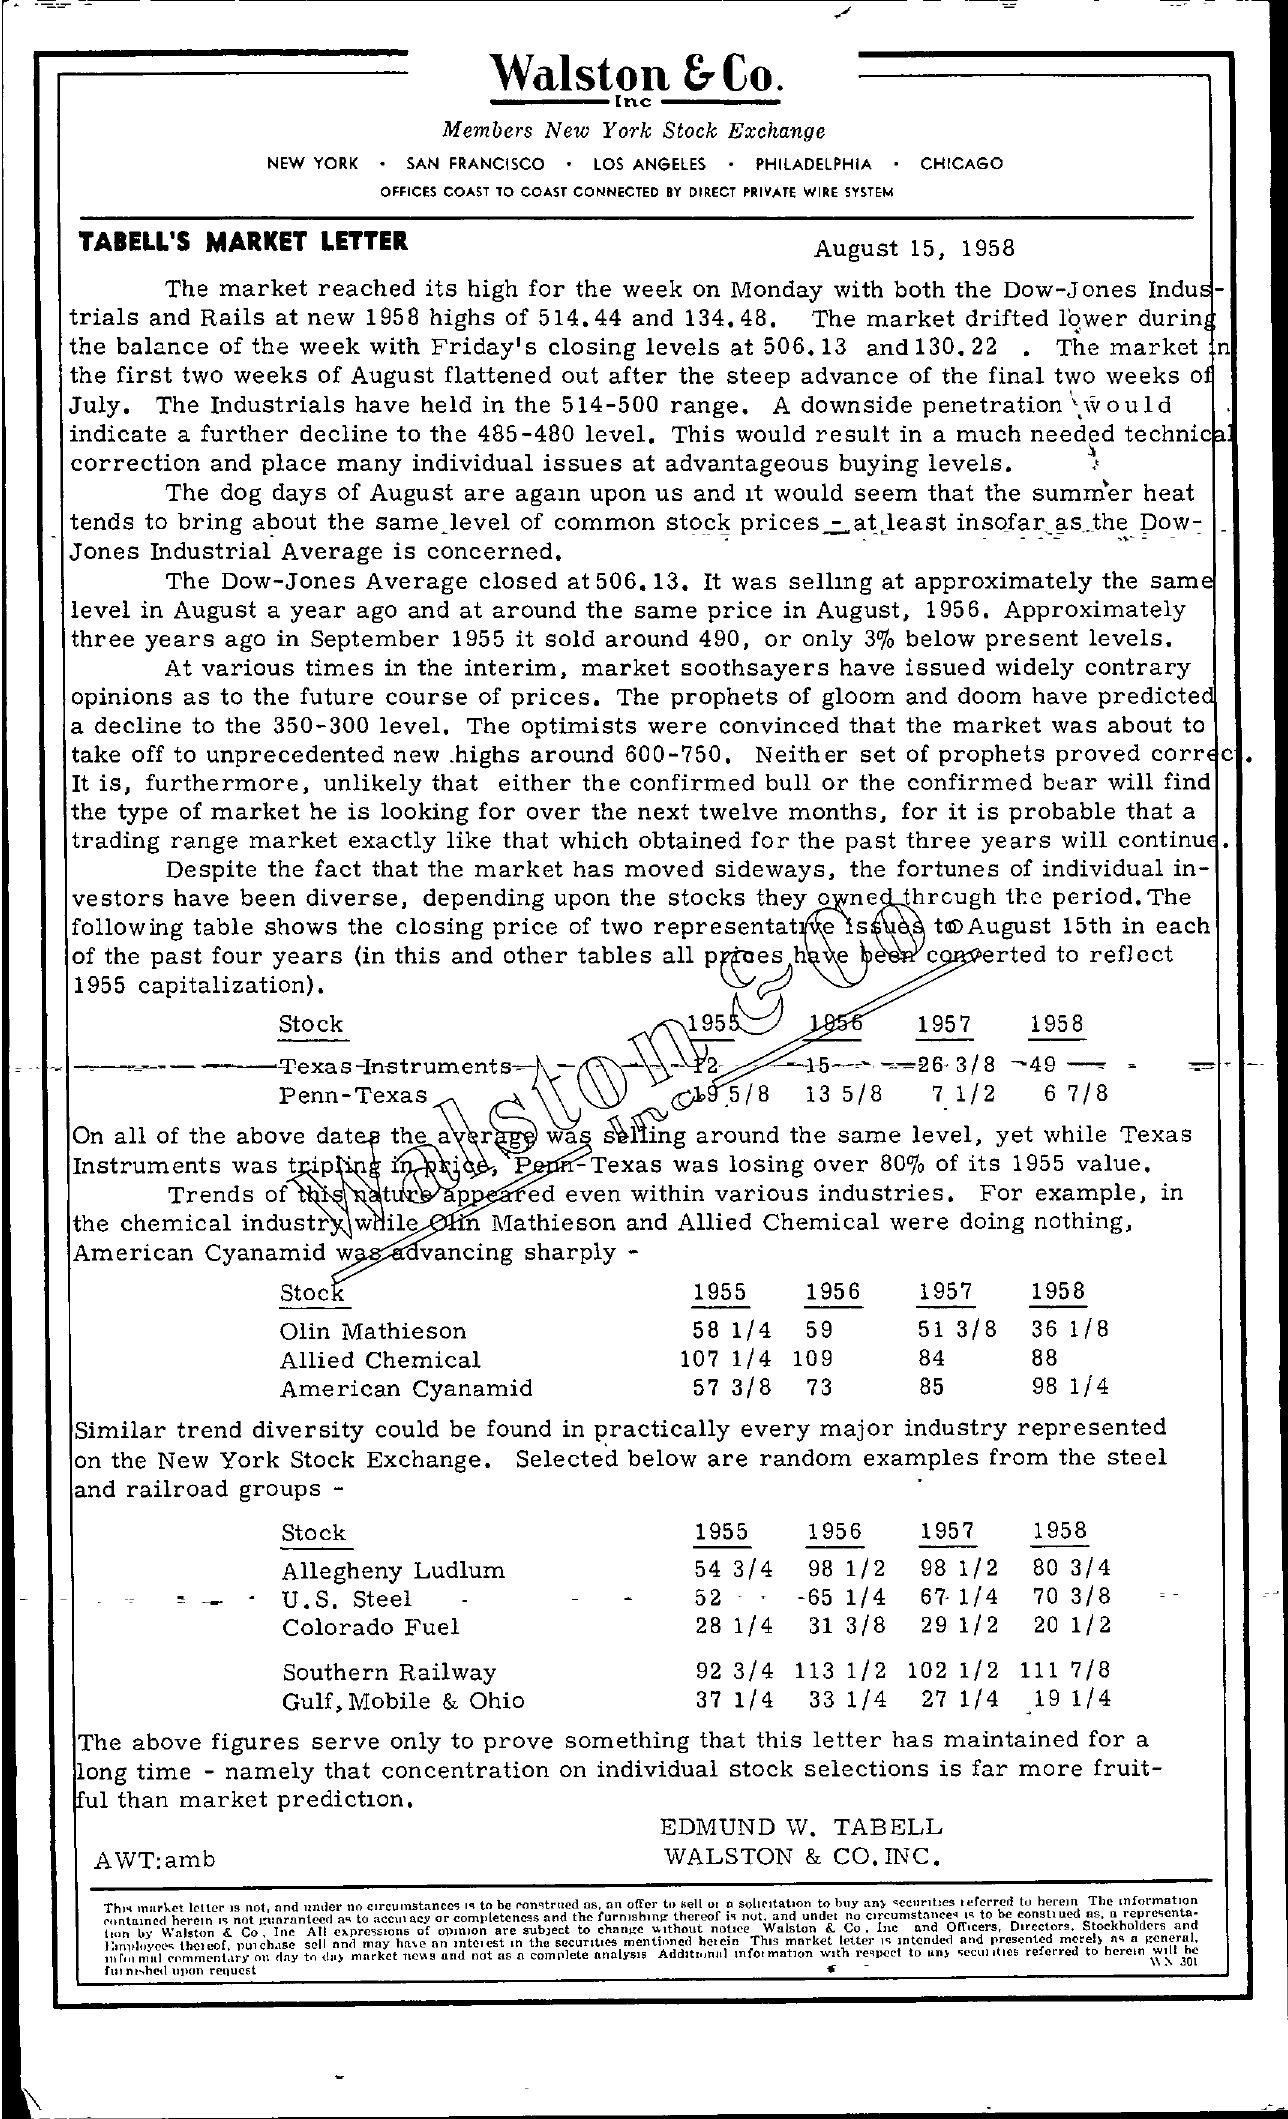 Tabell's Market Letter - August 15, 1958